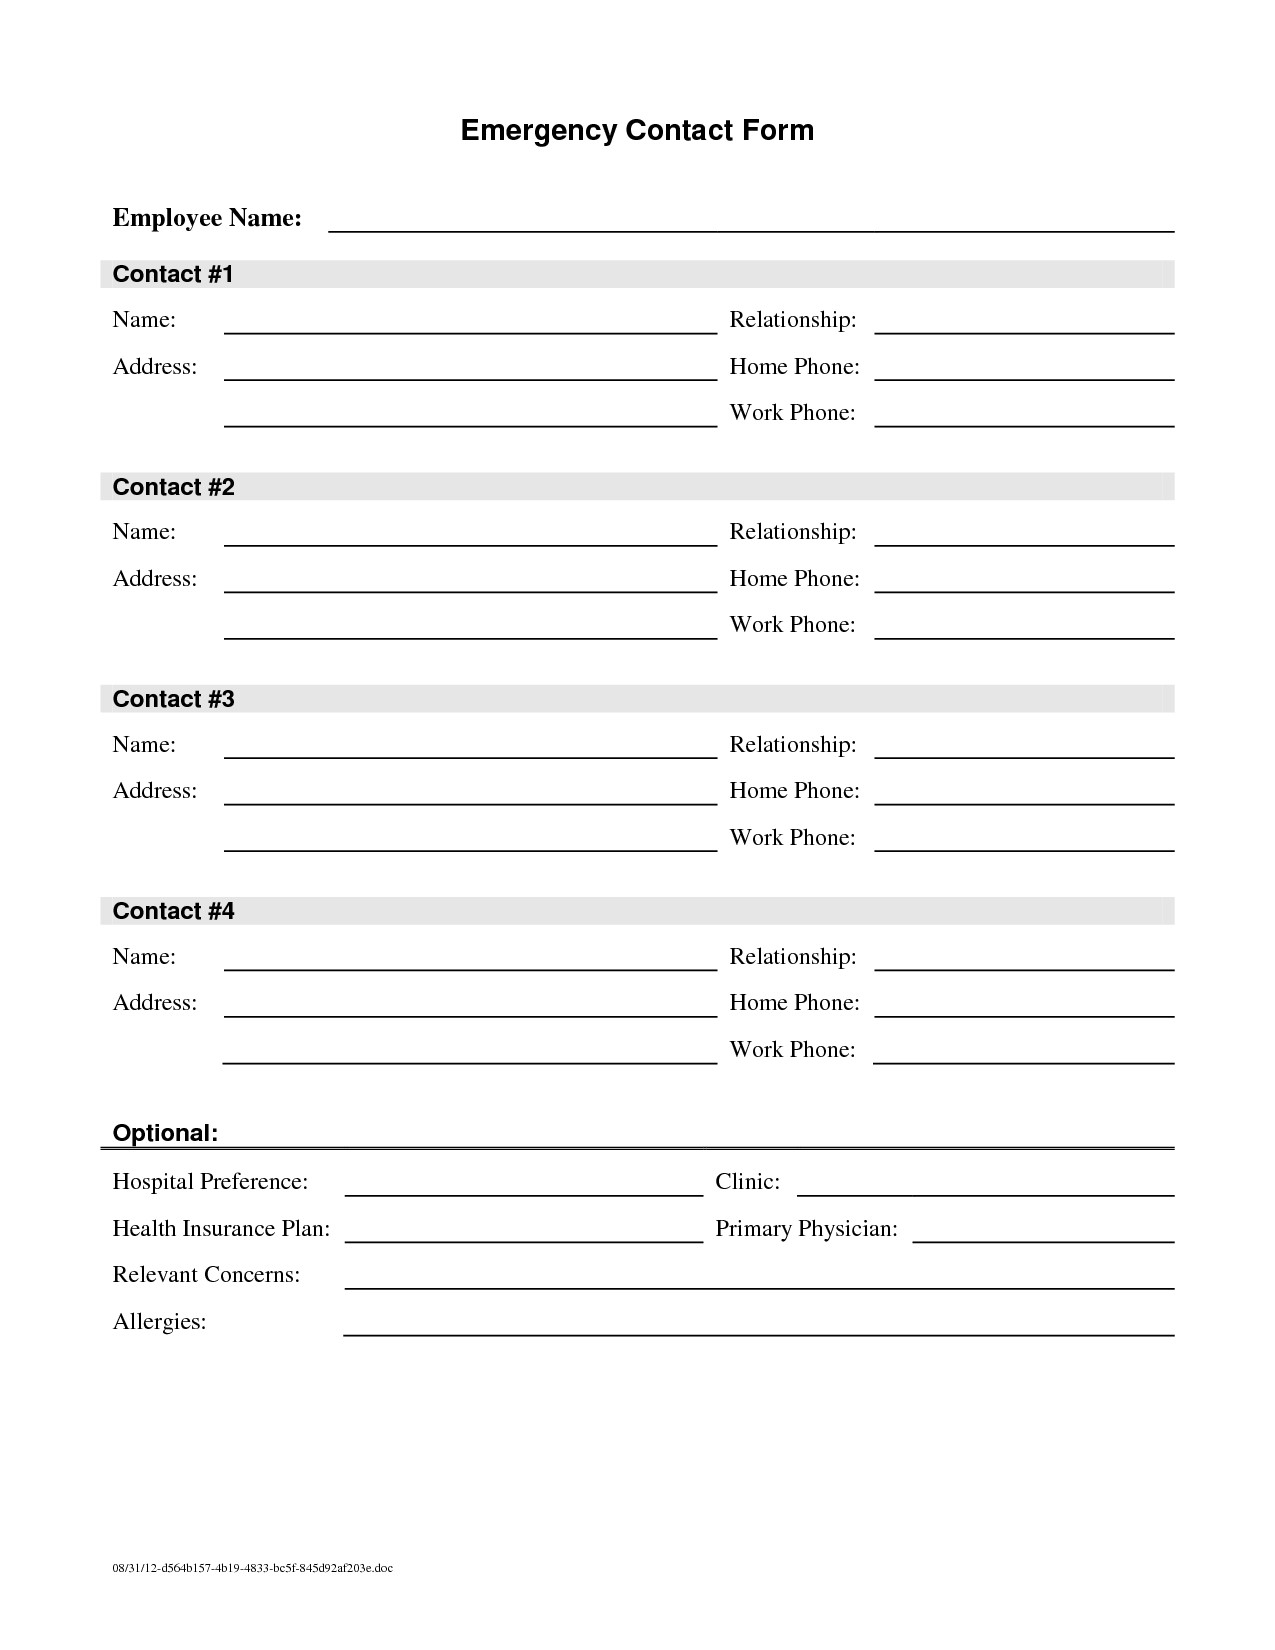 Employee Emergency Contact forms Employee Emergency Contact Printable form to Pin